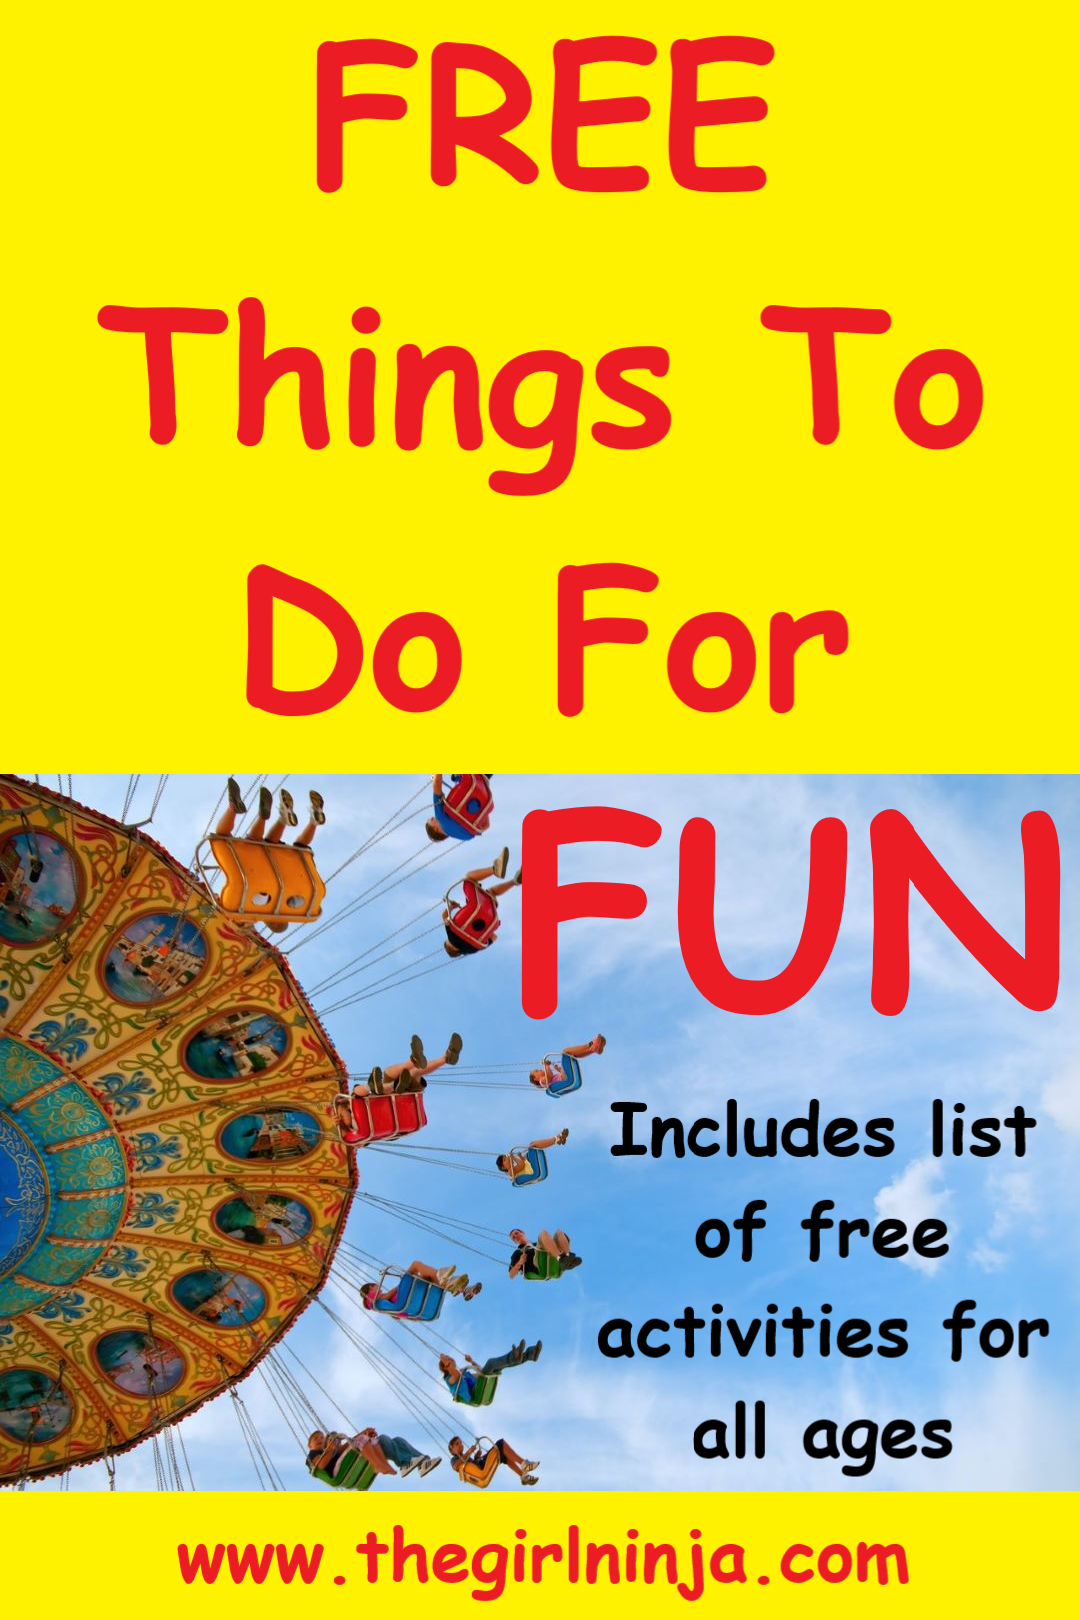 Yellow rectangle with red text that reads FREE Things To Do For FUN. Under red text you are looking up at people on a carnival sing ride with a blue sky behind them. On blue sky black text reads Includes list of free activities for all ages. At bottom center red text reads www.thegirlninja.com